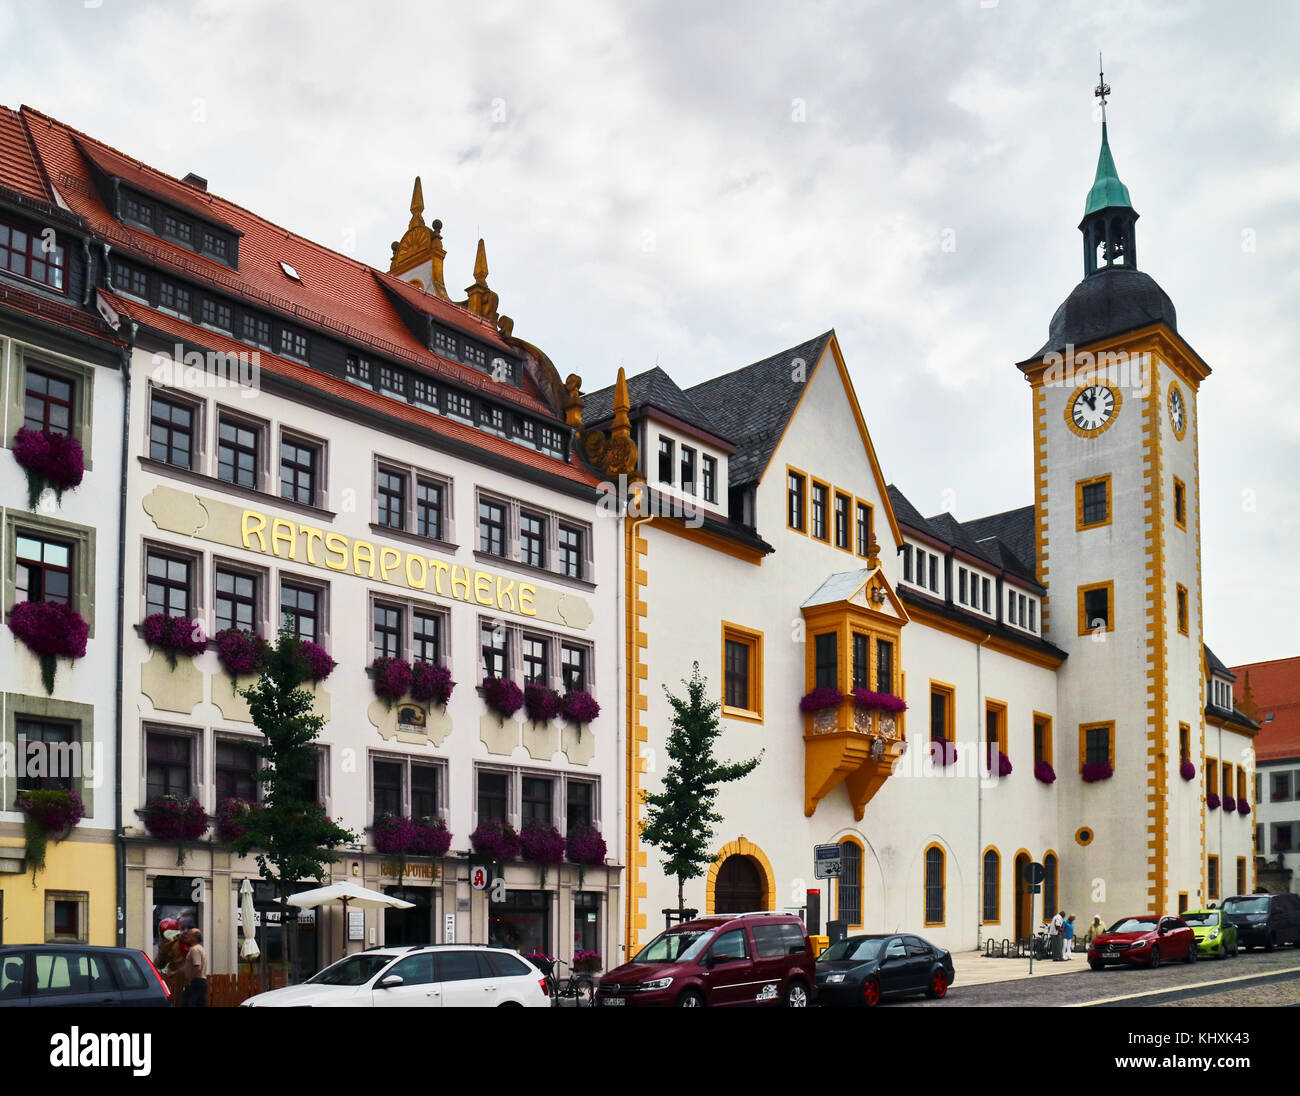 Europe, Germany, Saxony, Freiberg, the old town, the Rathaux, town hall, the Obermarkt square - Stock Image